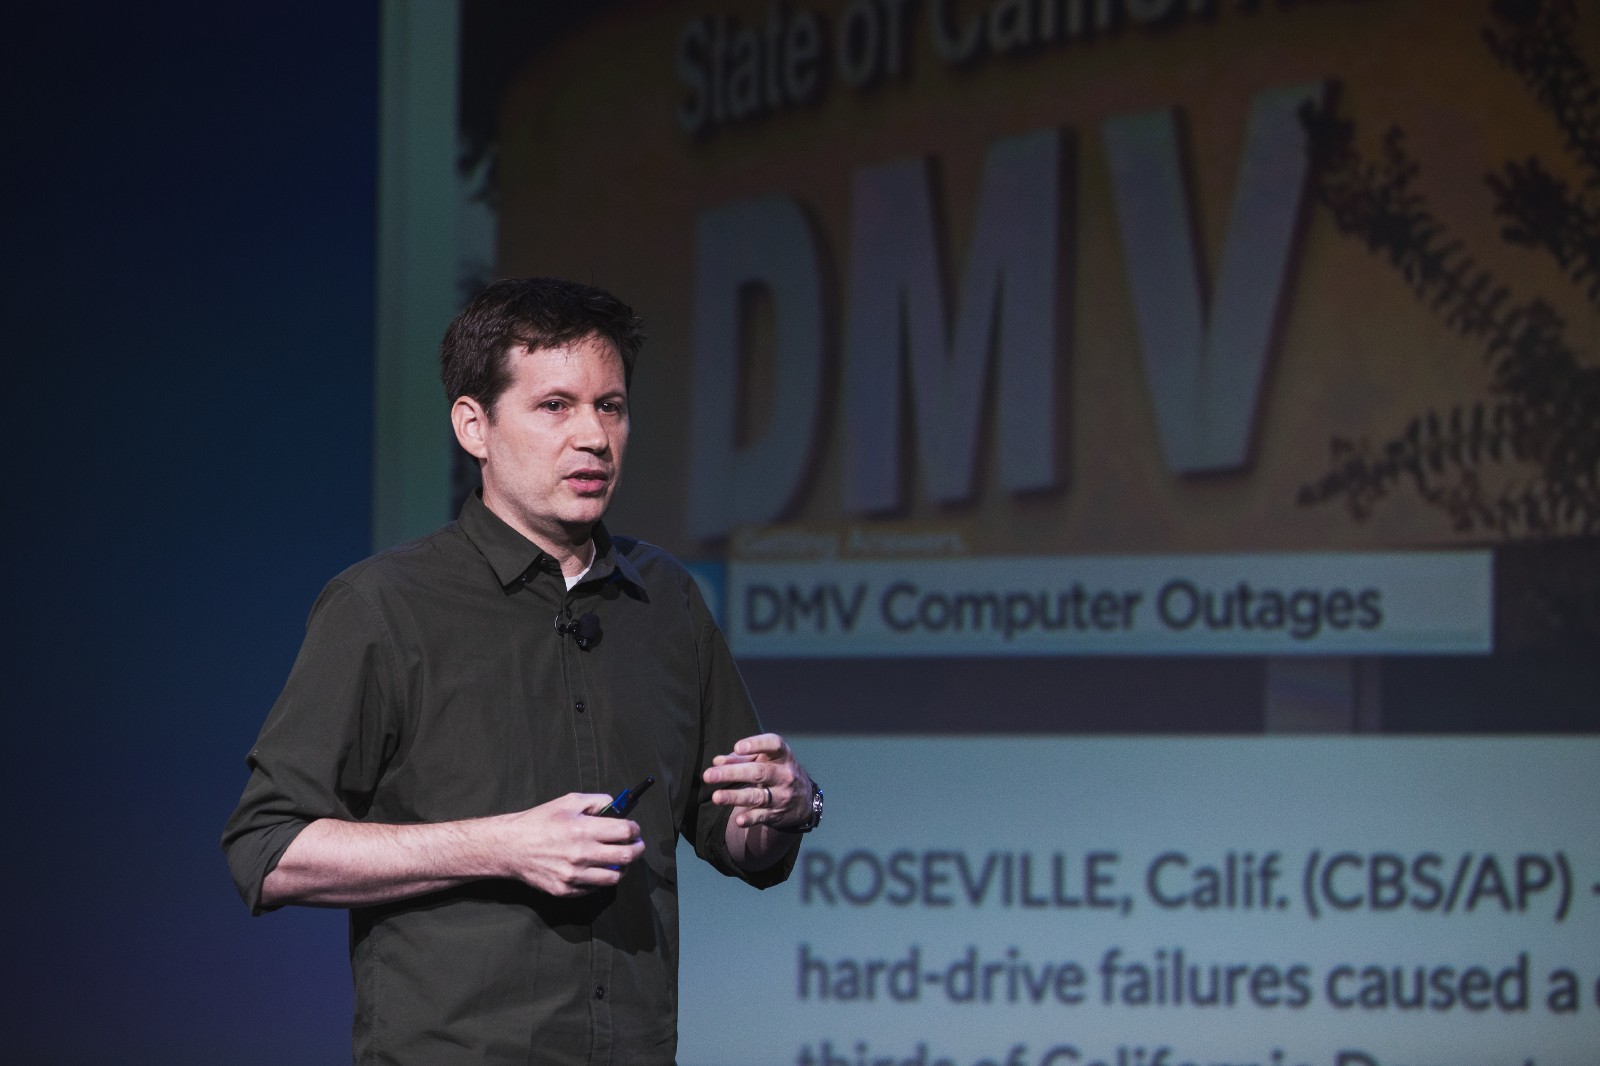 <p>John Allspaw, Founder of Adaptive Capacity Labs, and former CTO of Etsy</p>